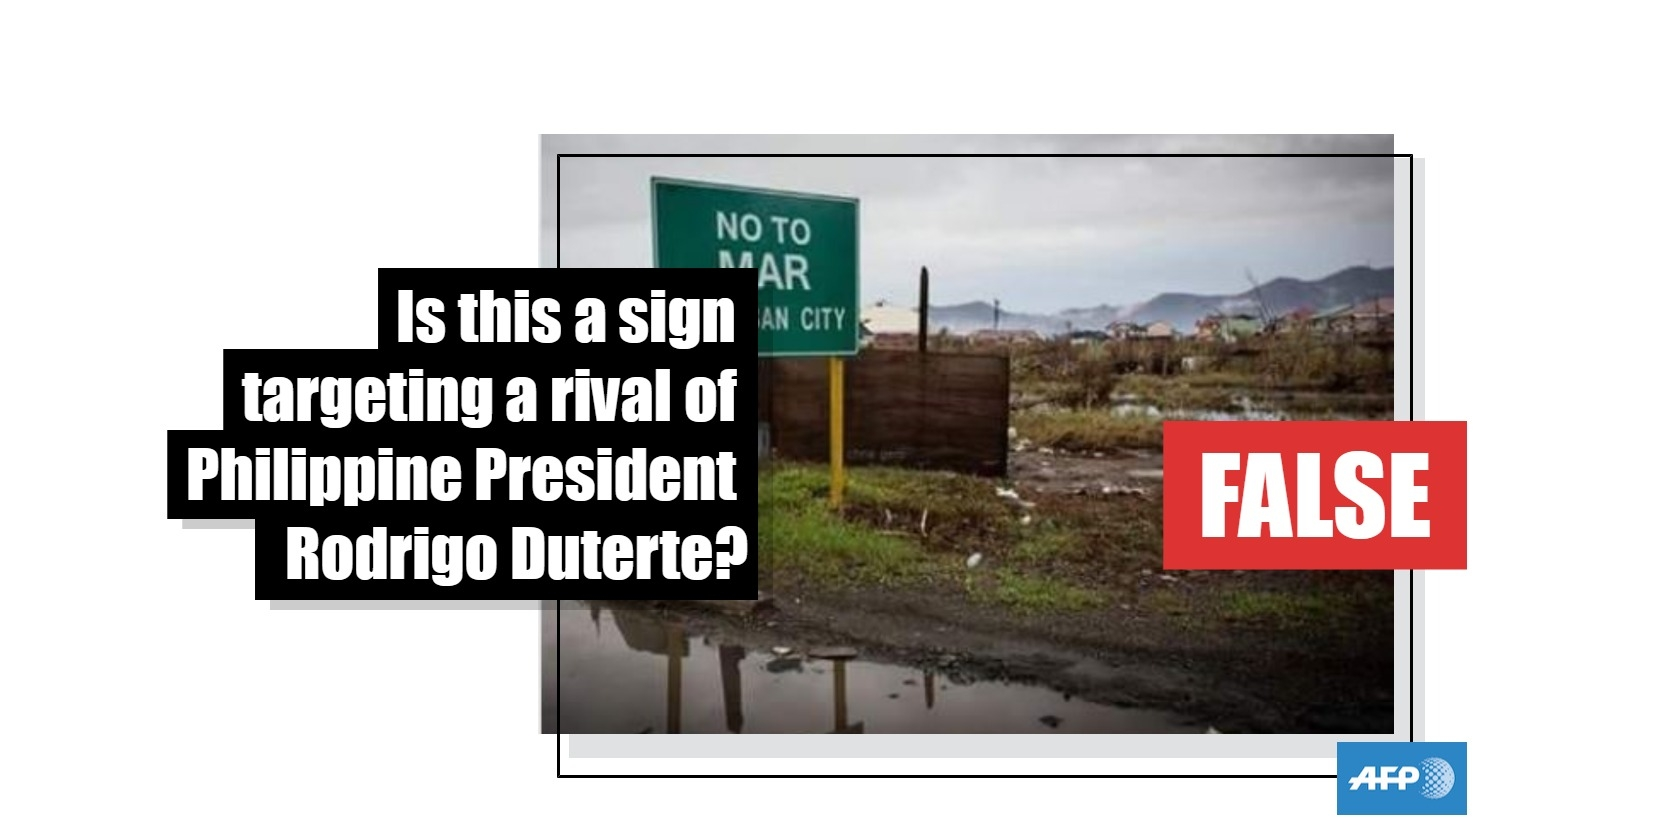 No, this is not a photo of a signpost targeting a rival of Philippine President Rodrigo Duterte